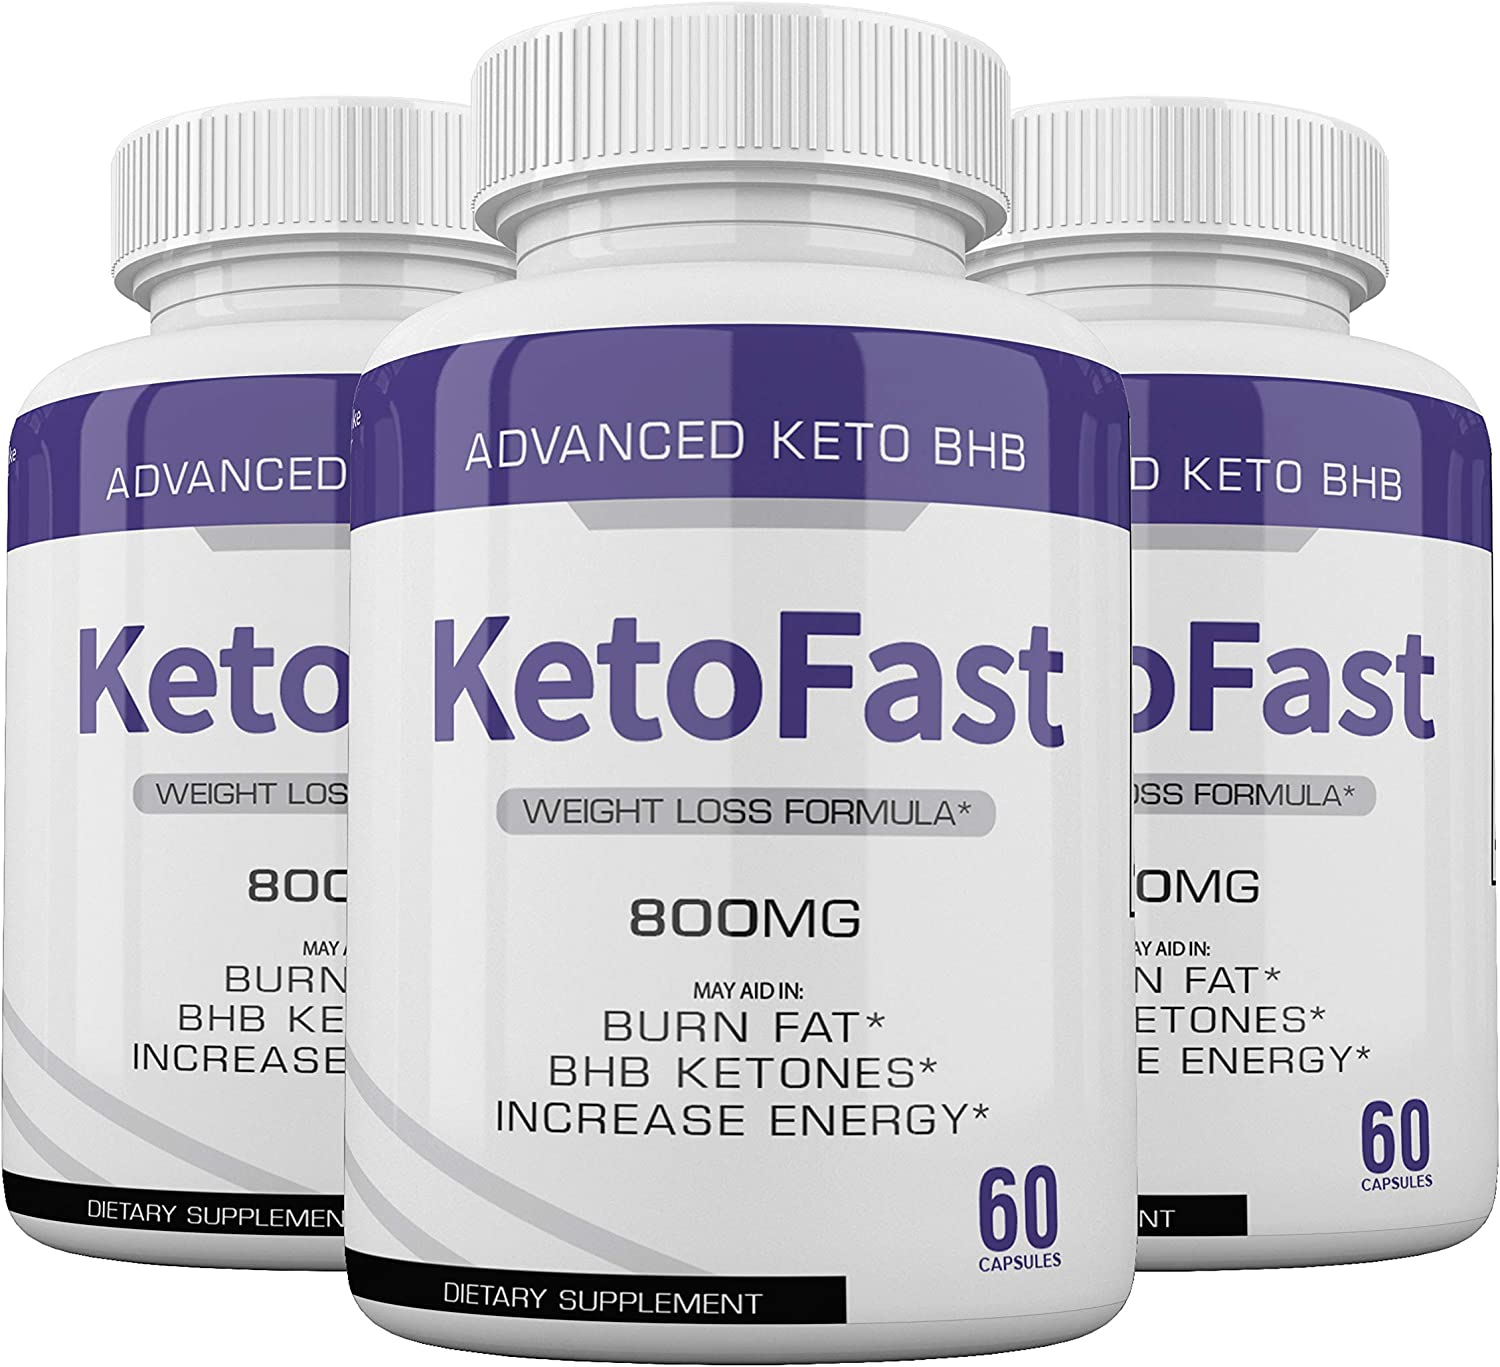 (3-Pack) Keto Fast Diet Pills BHB Advanced Ketogenic Keto Fast Burn Ultra Weight Management Capsules 700mg Pure Keto Fast Supplement for Energy, Focus Boost Exogenous Ketones for Rapid Ketosis